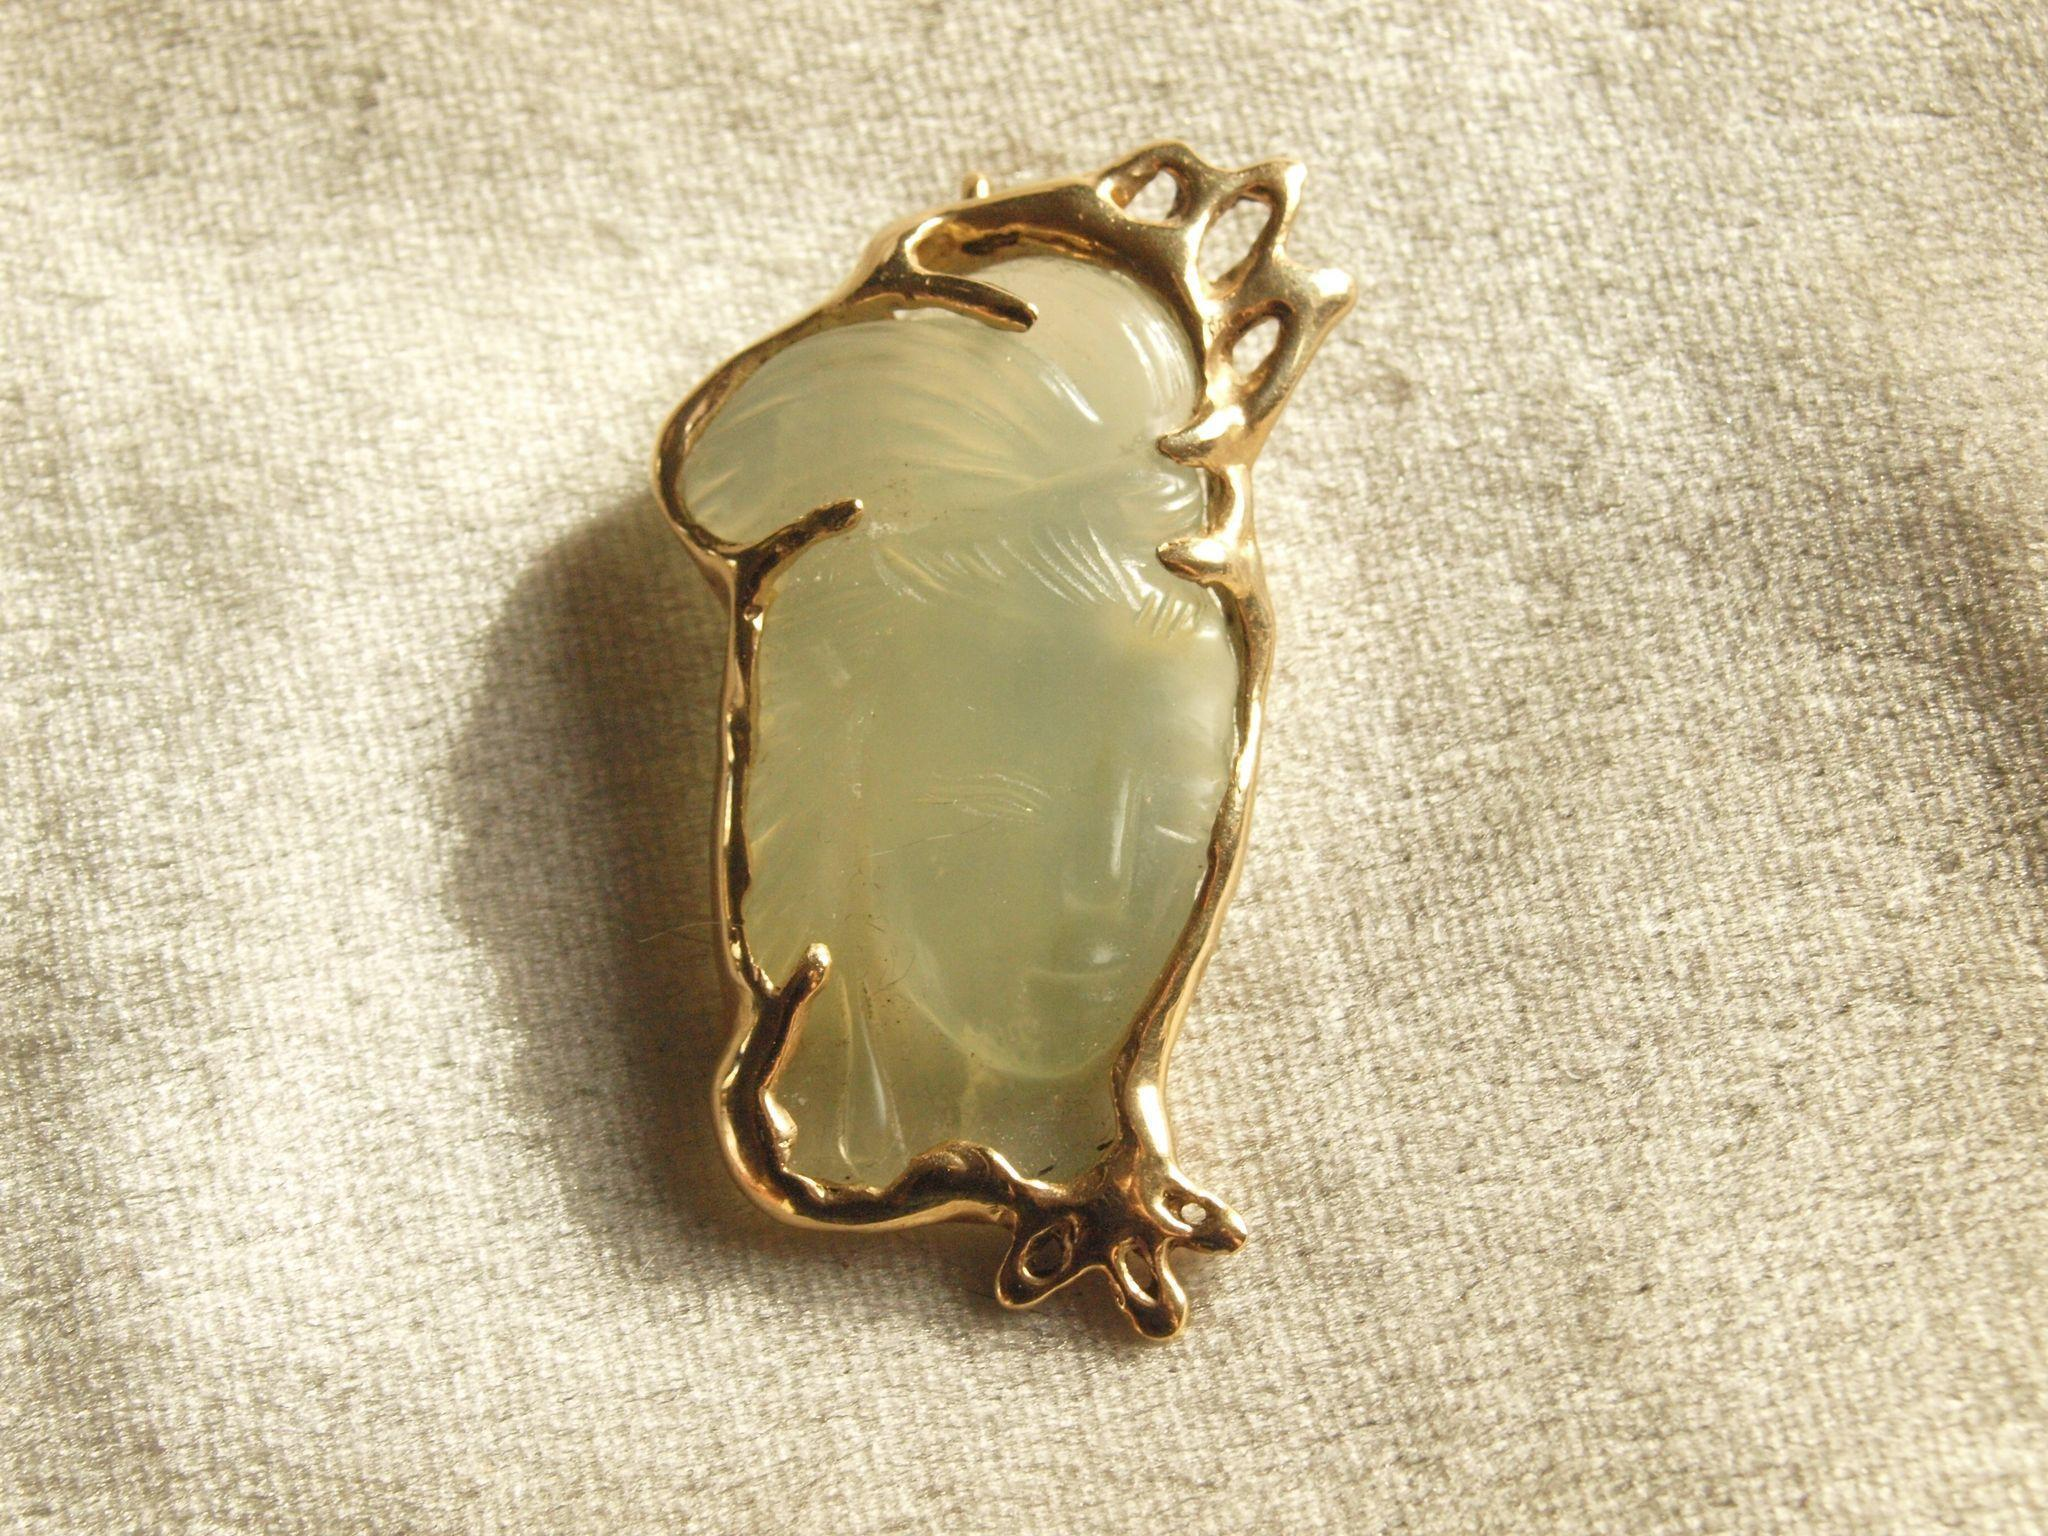 Carved Water Jade pendant in 14k frame